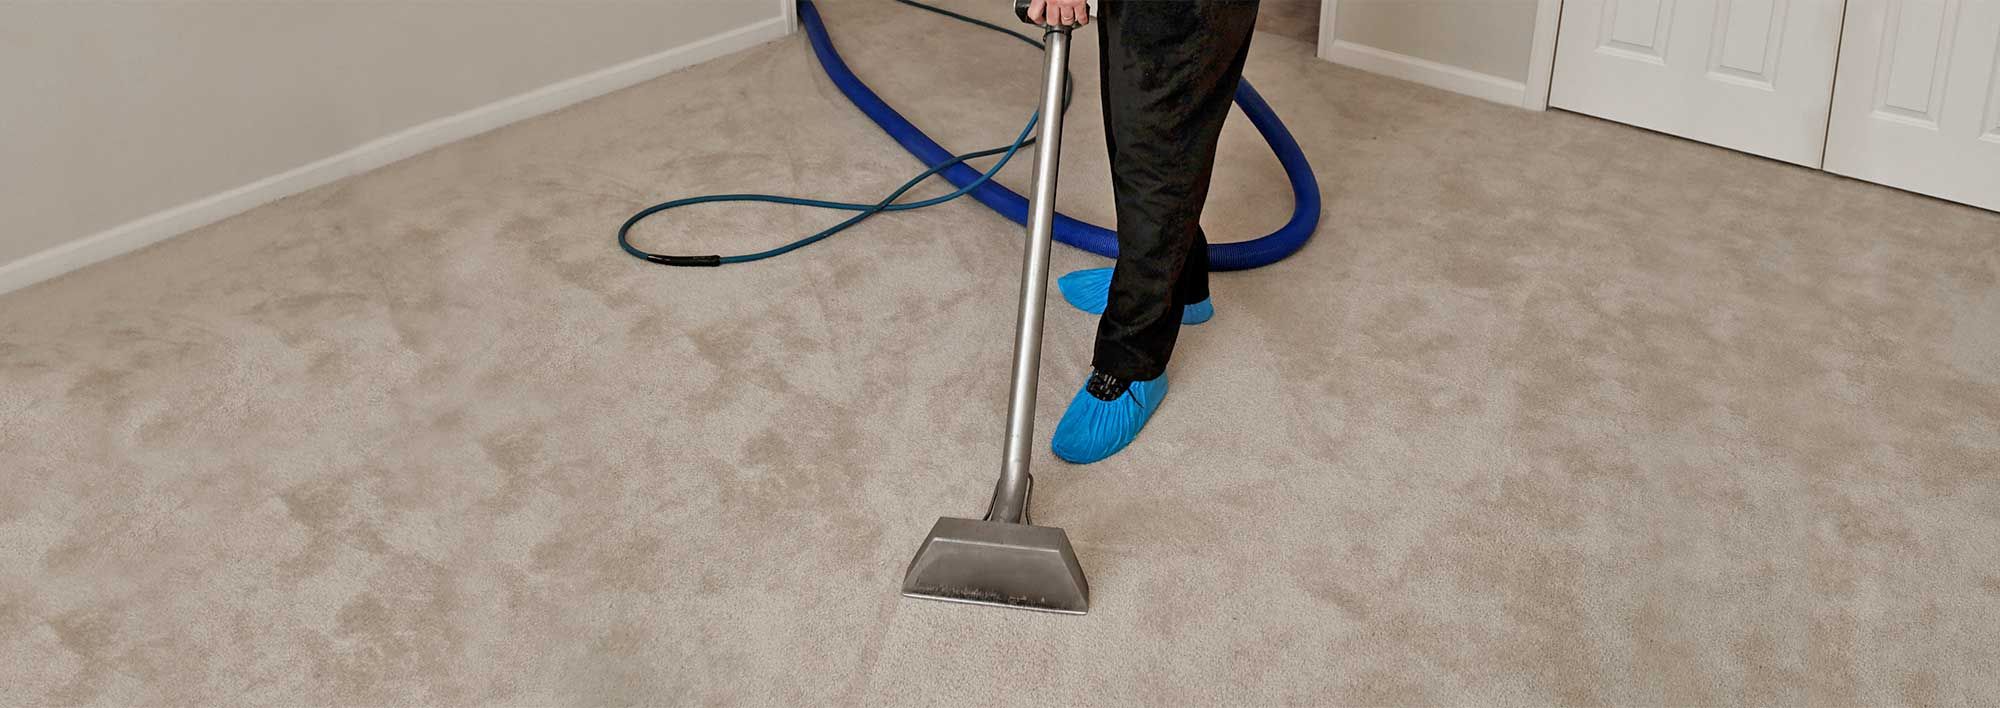 Different carpet cleaning methods used by professional carpet cleaners Adelaide